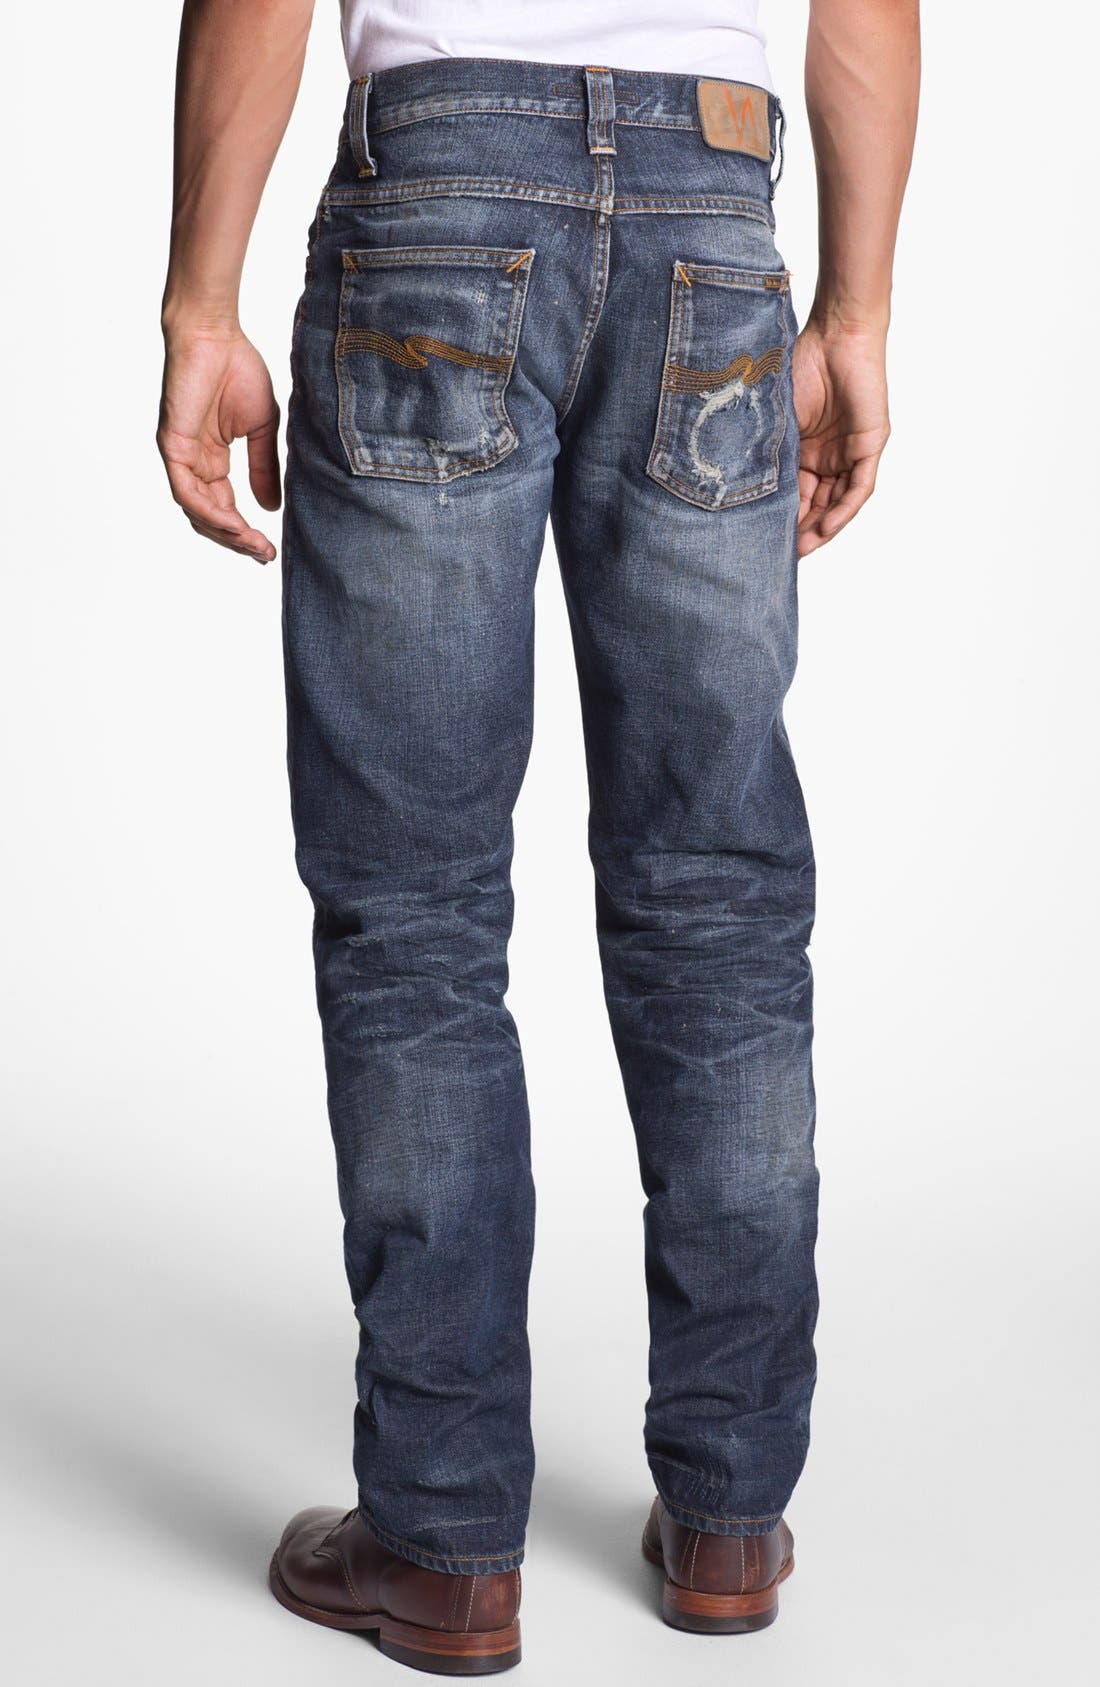 Alternate Image 1 Selected - Nudie 'Alf' Slim Straight Leg Jeans (Organic Larry Replica)